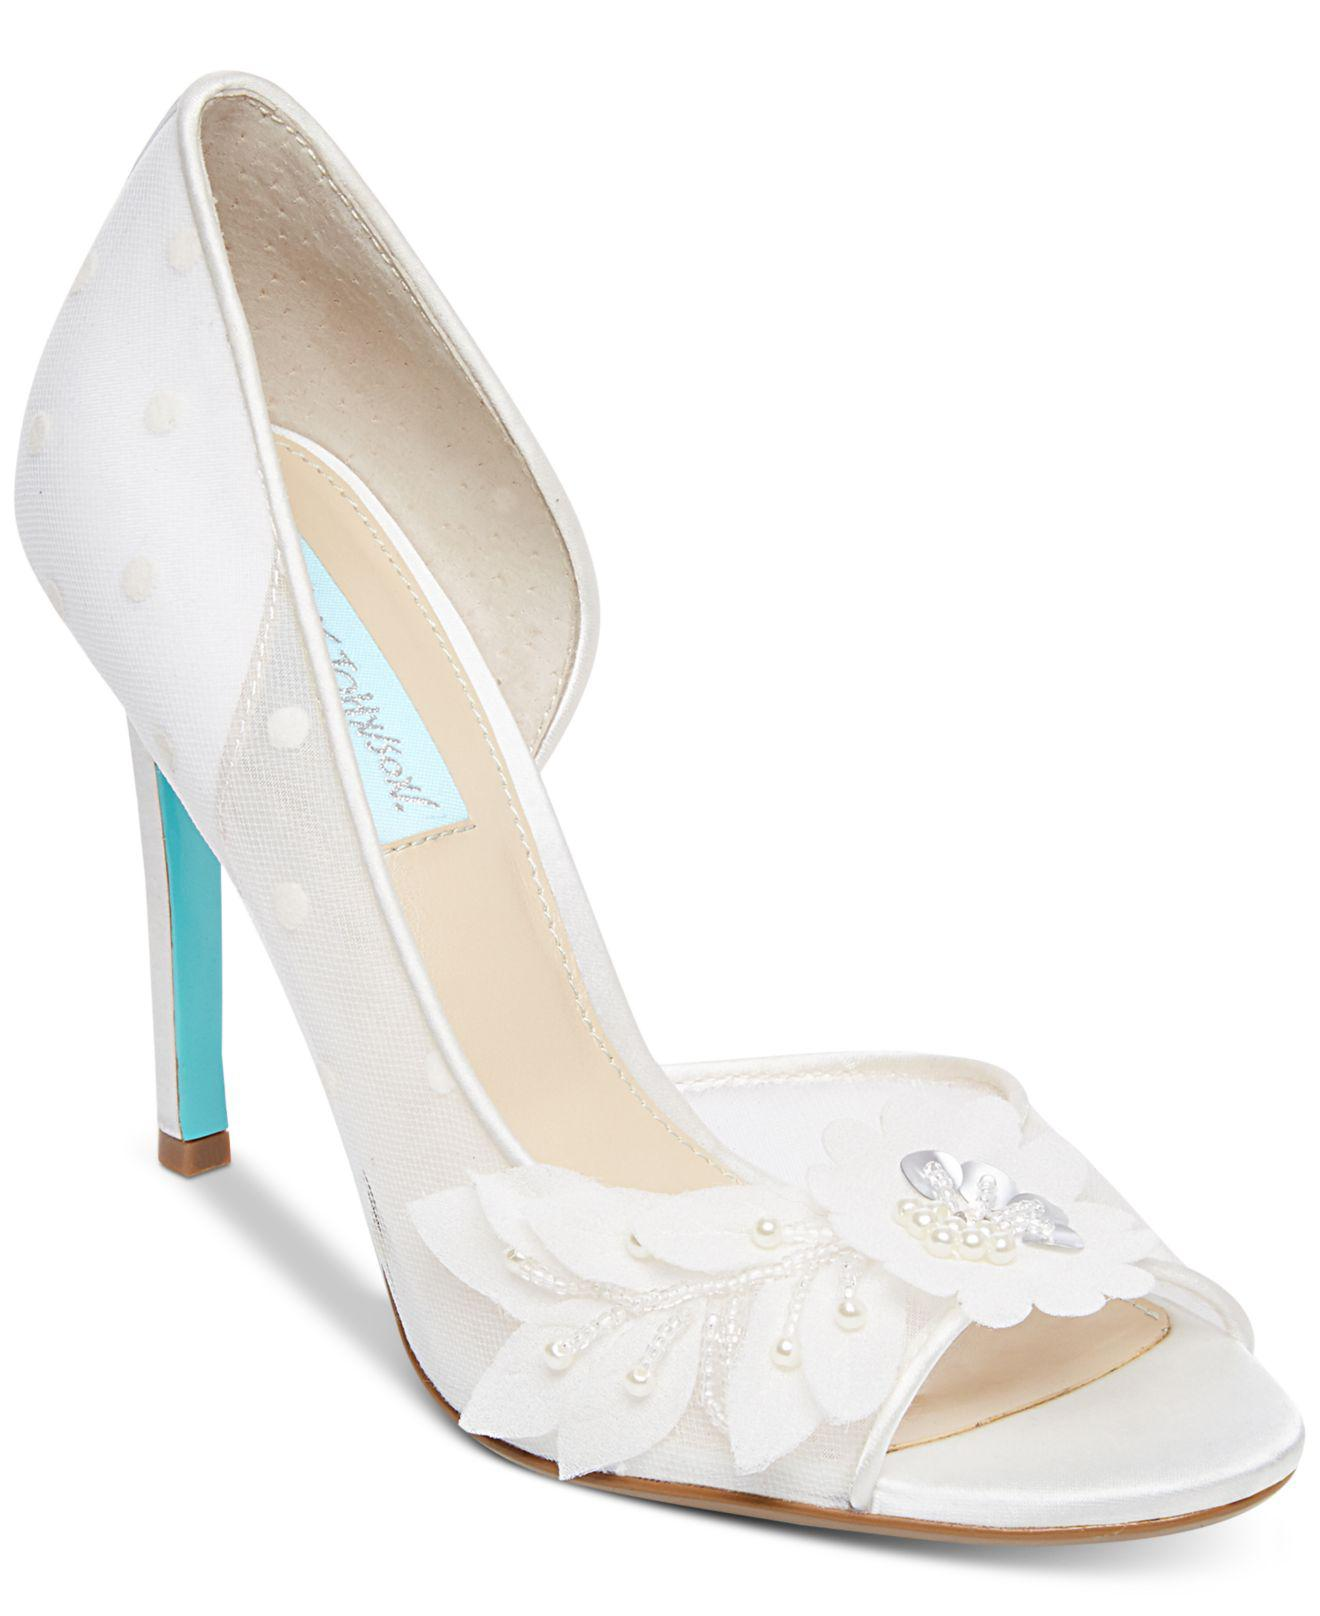 739036e4890a00 Lyst - Betsey Johnson Anise Peep-toe D orsay Evening Pumps in White